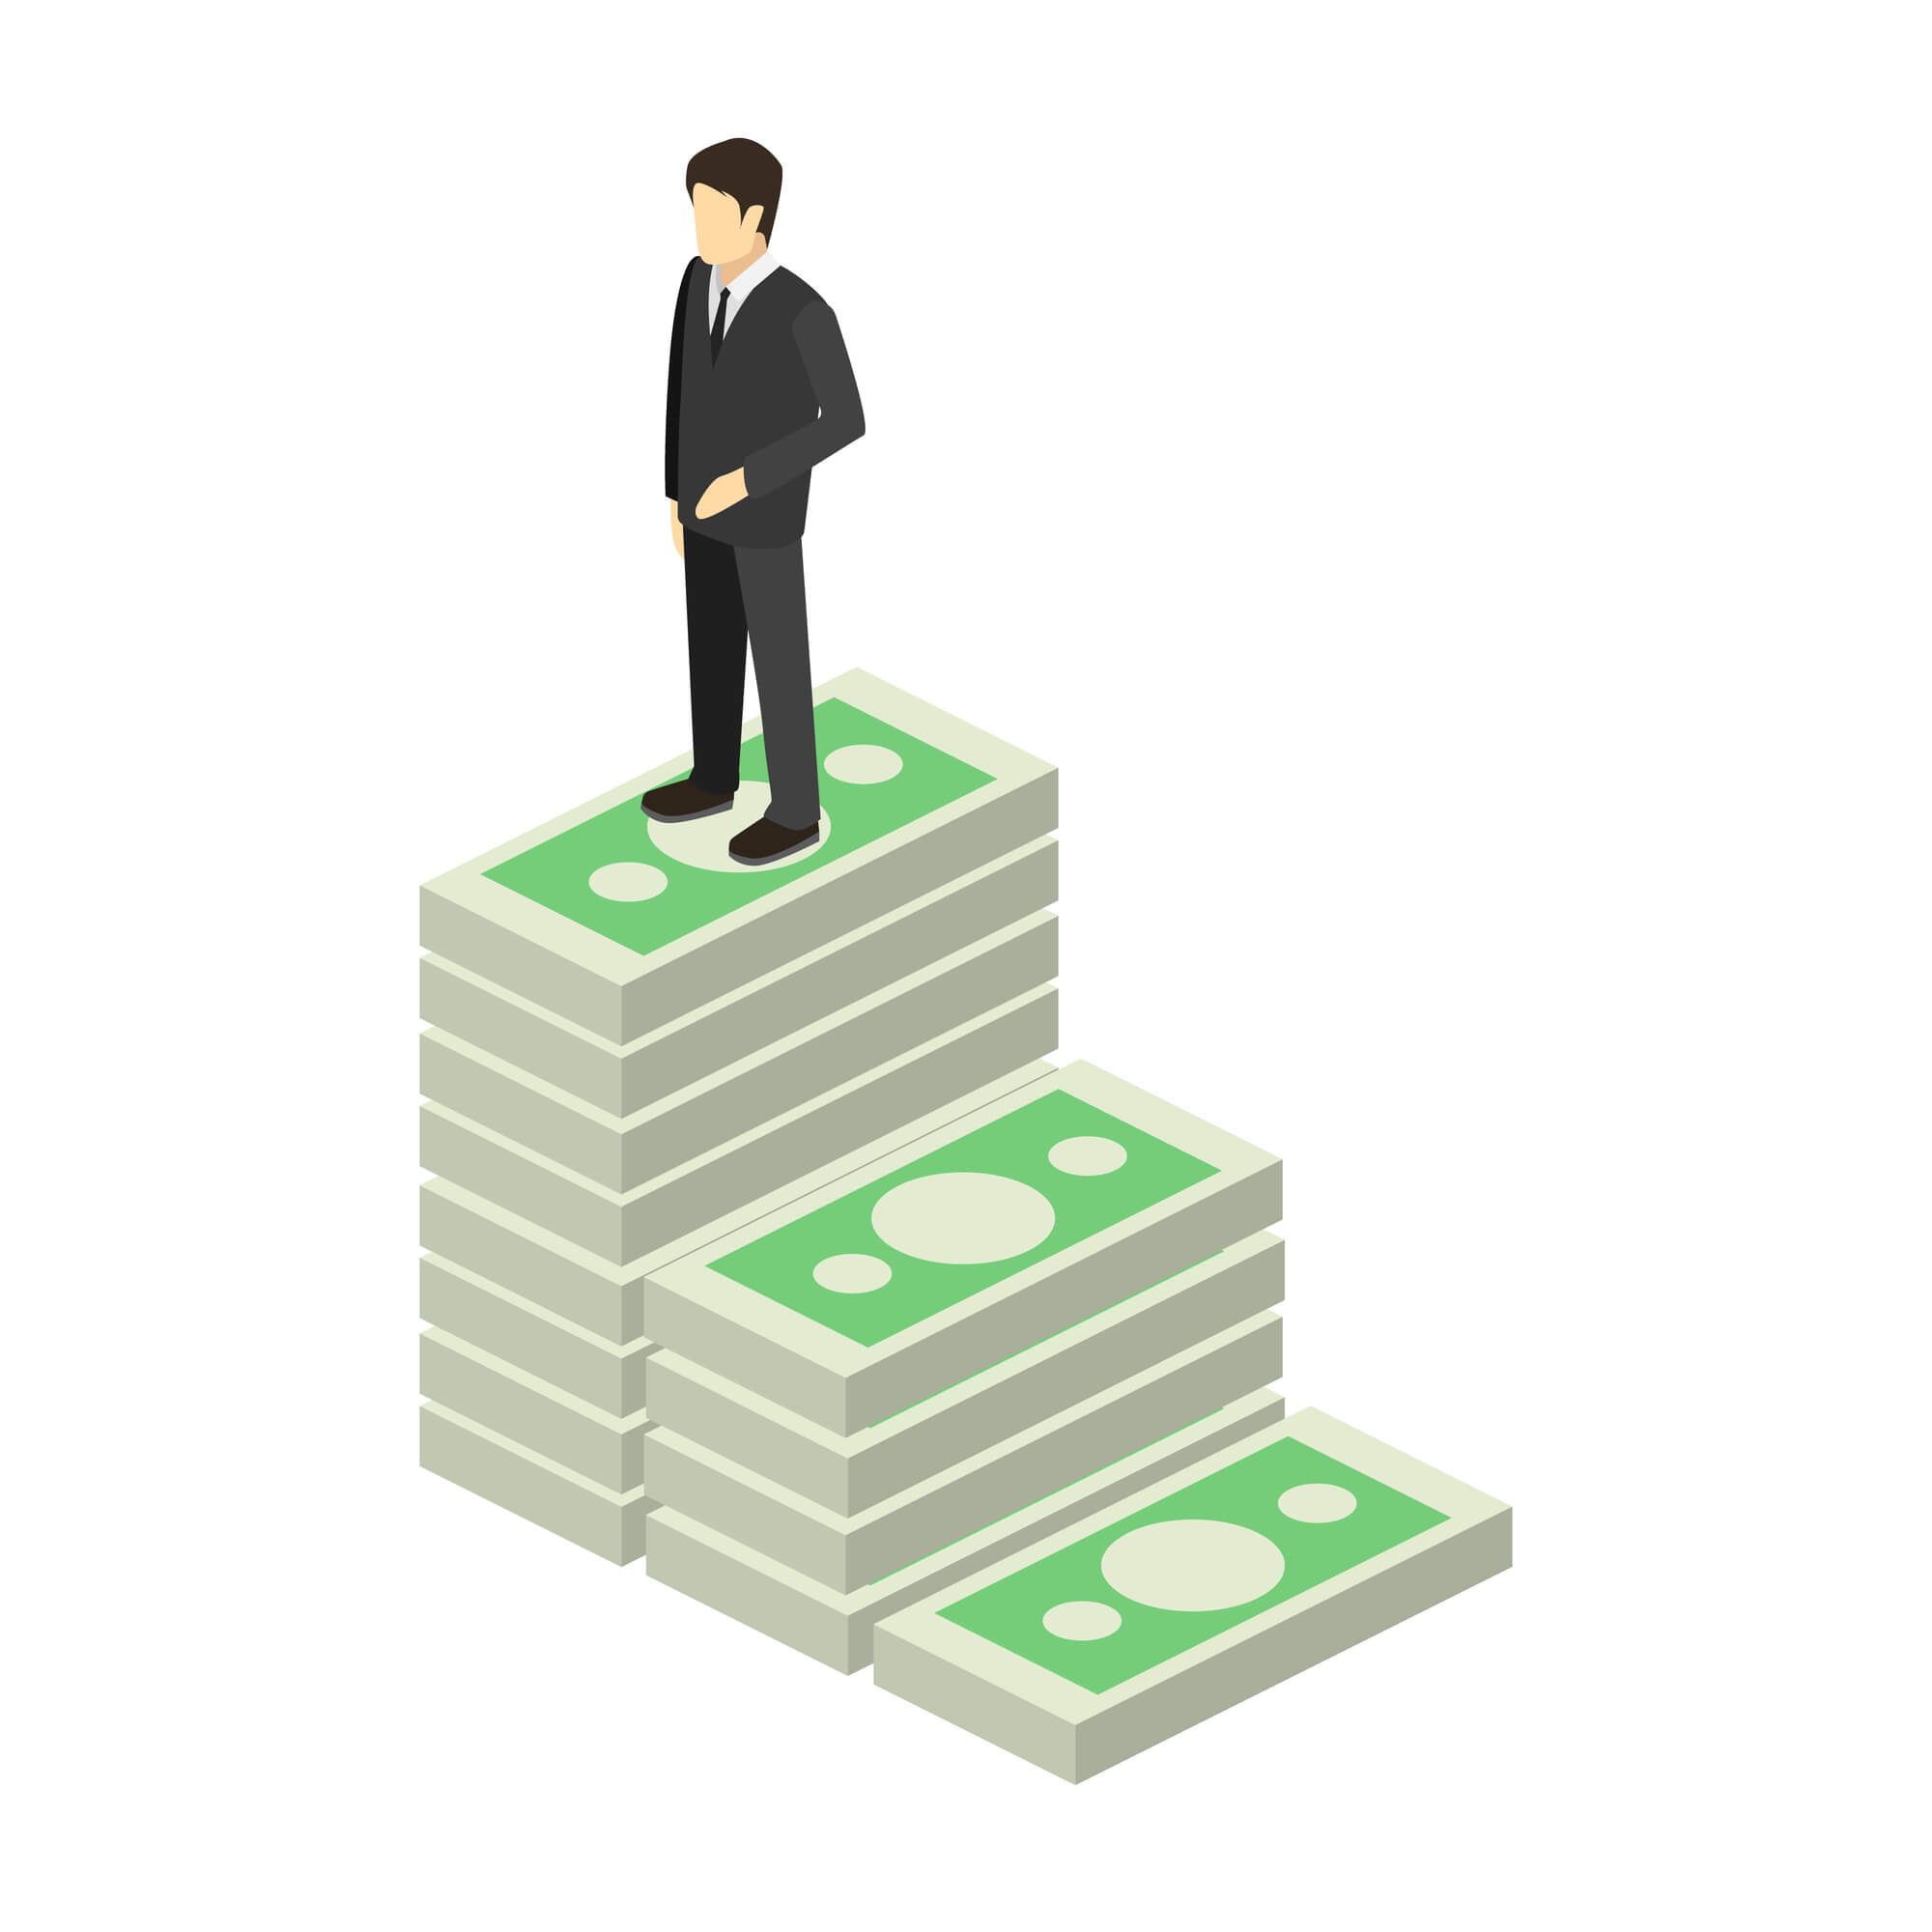 Cartoon man standing on money stairs